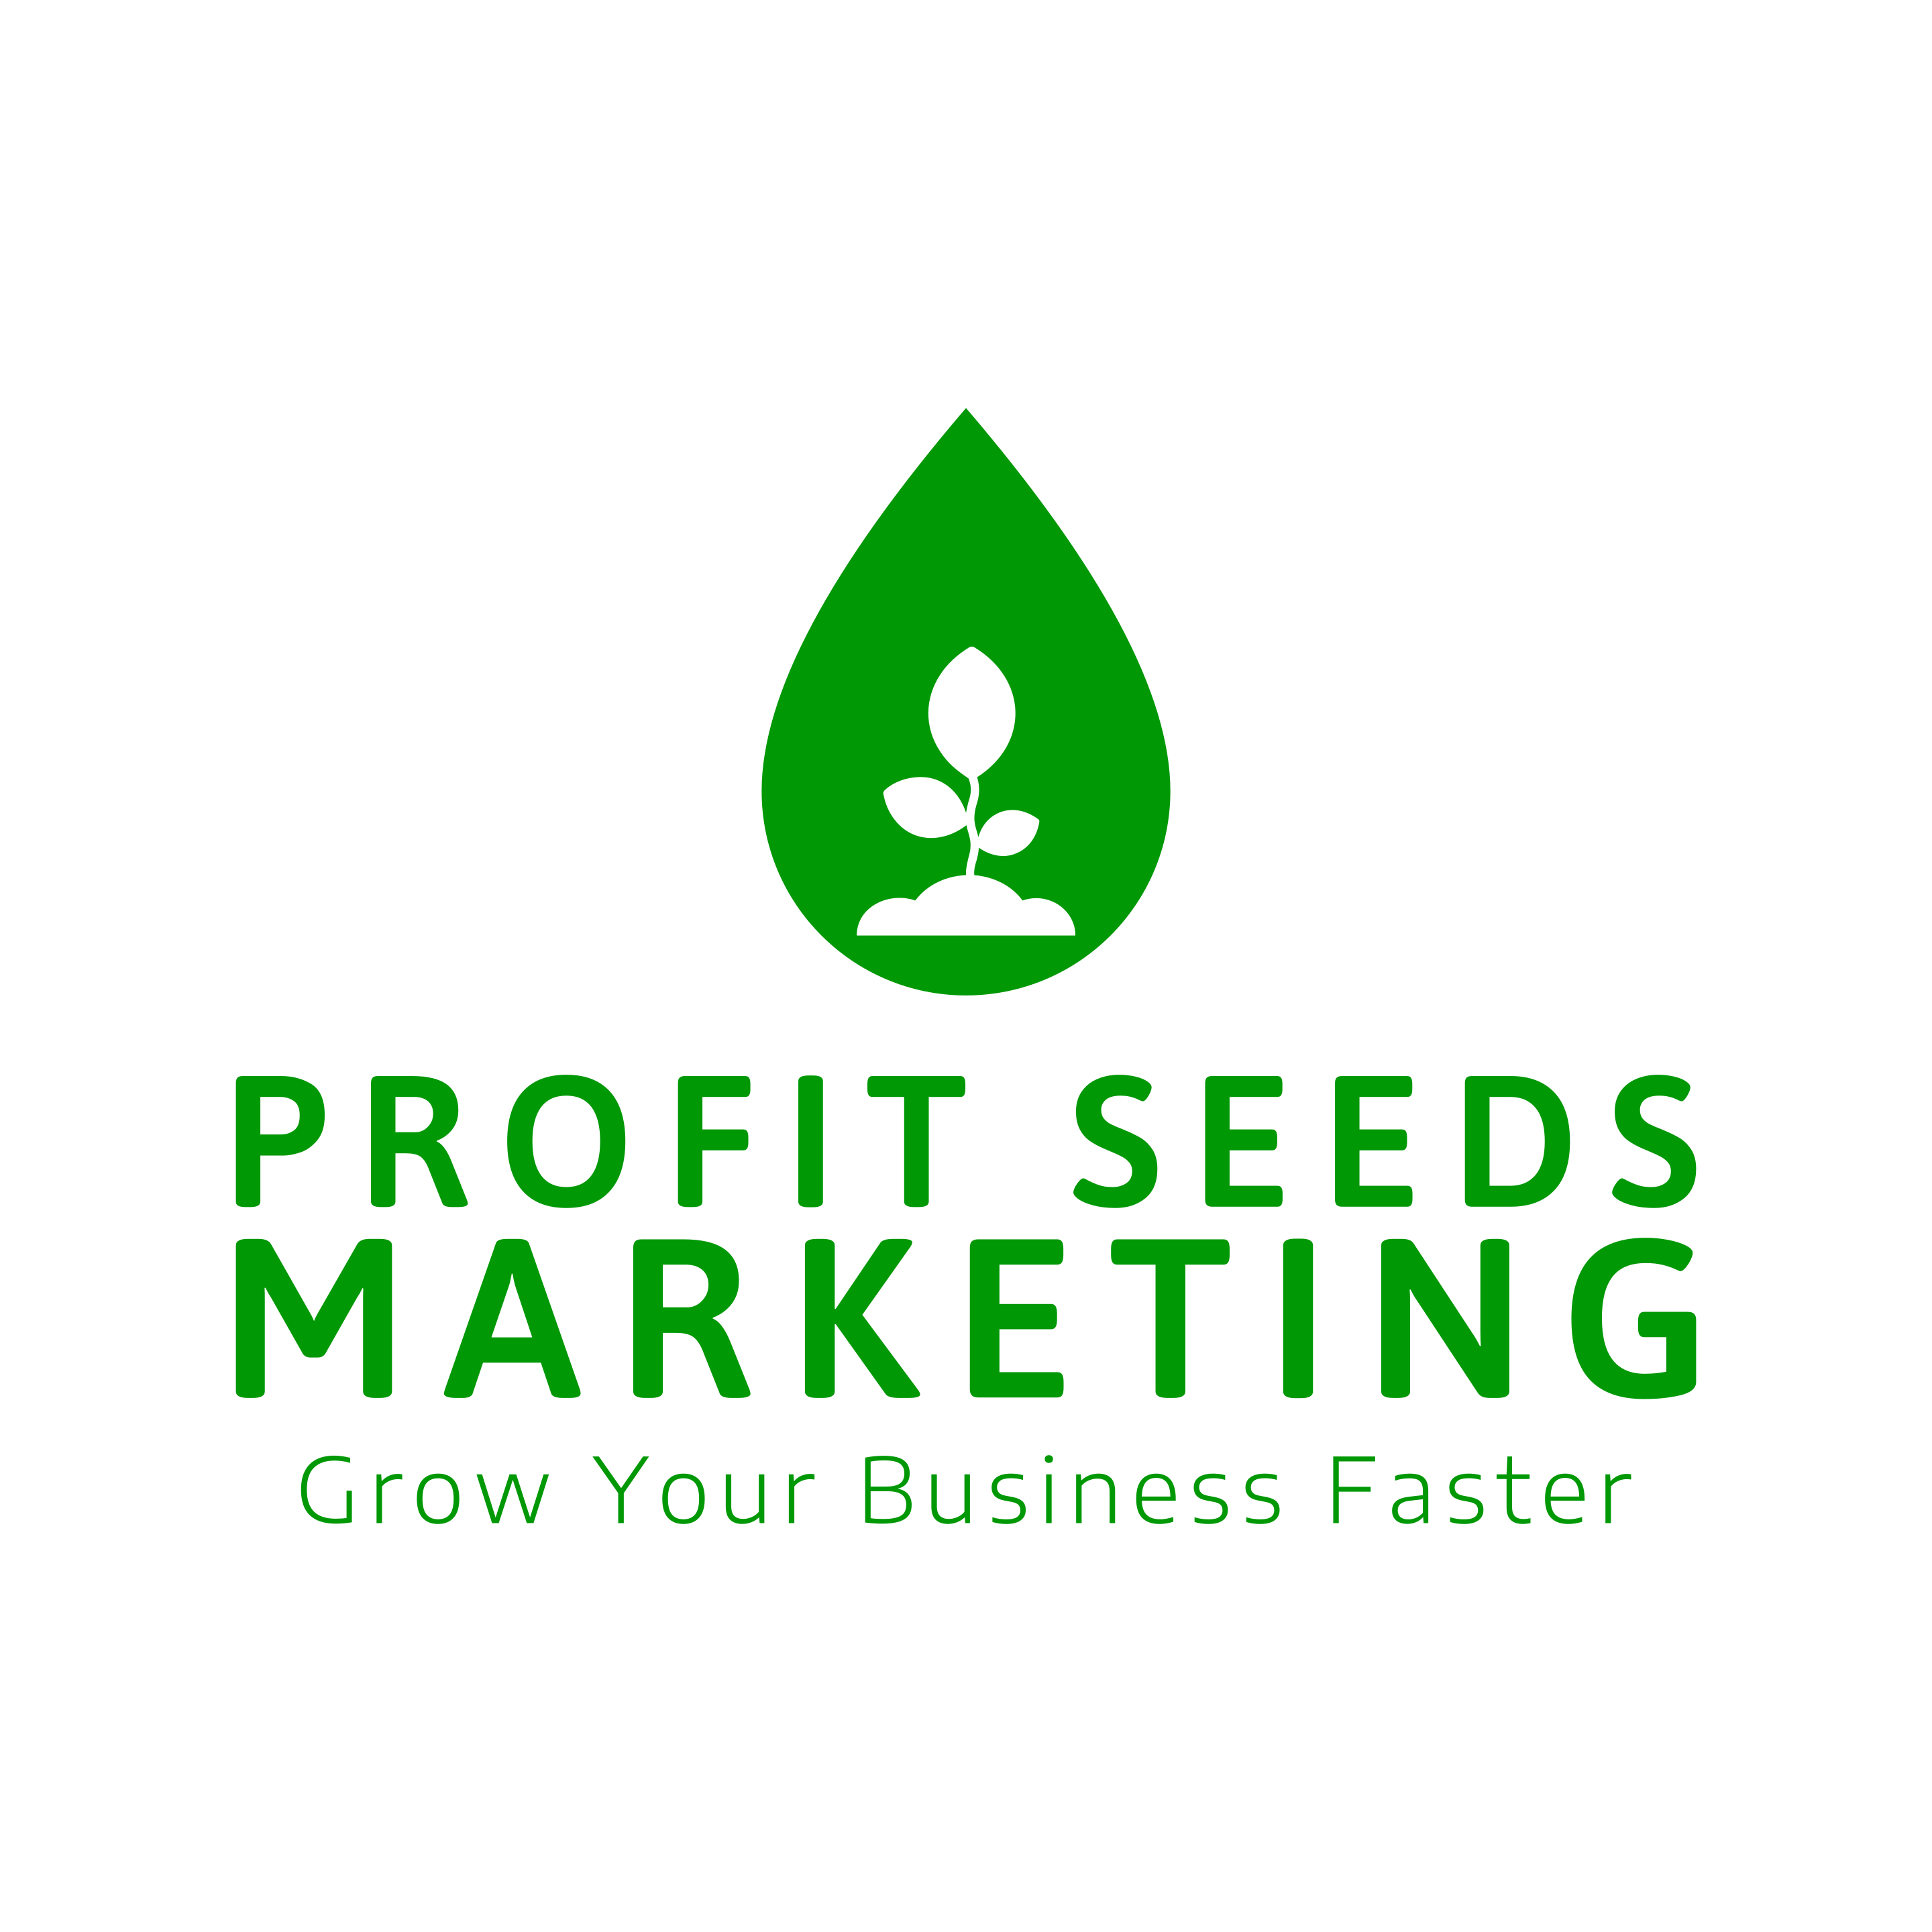 Profit Seeds Marketing